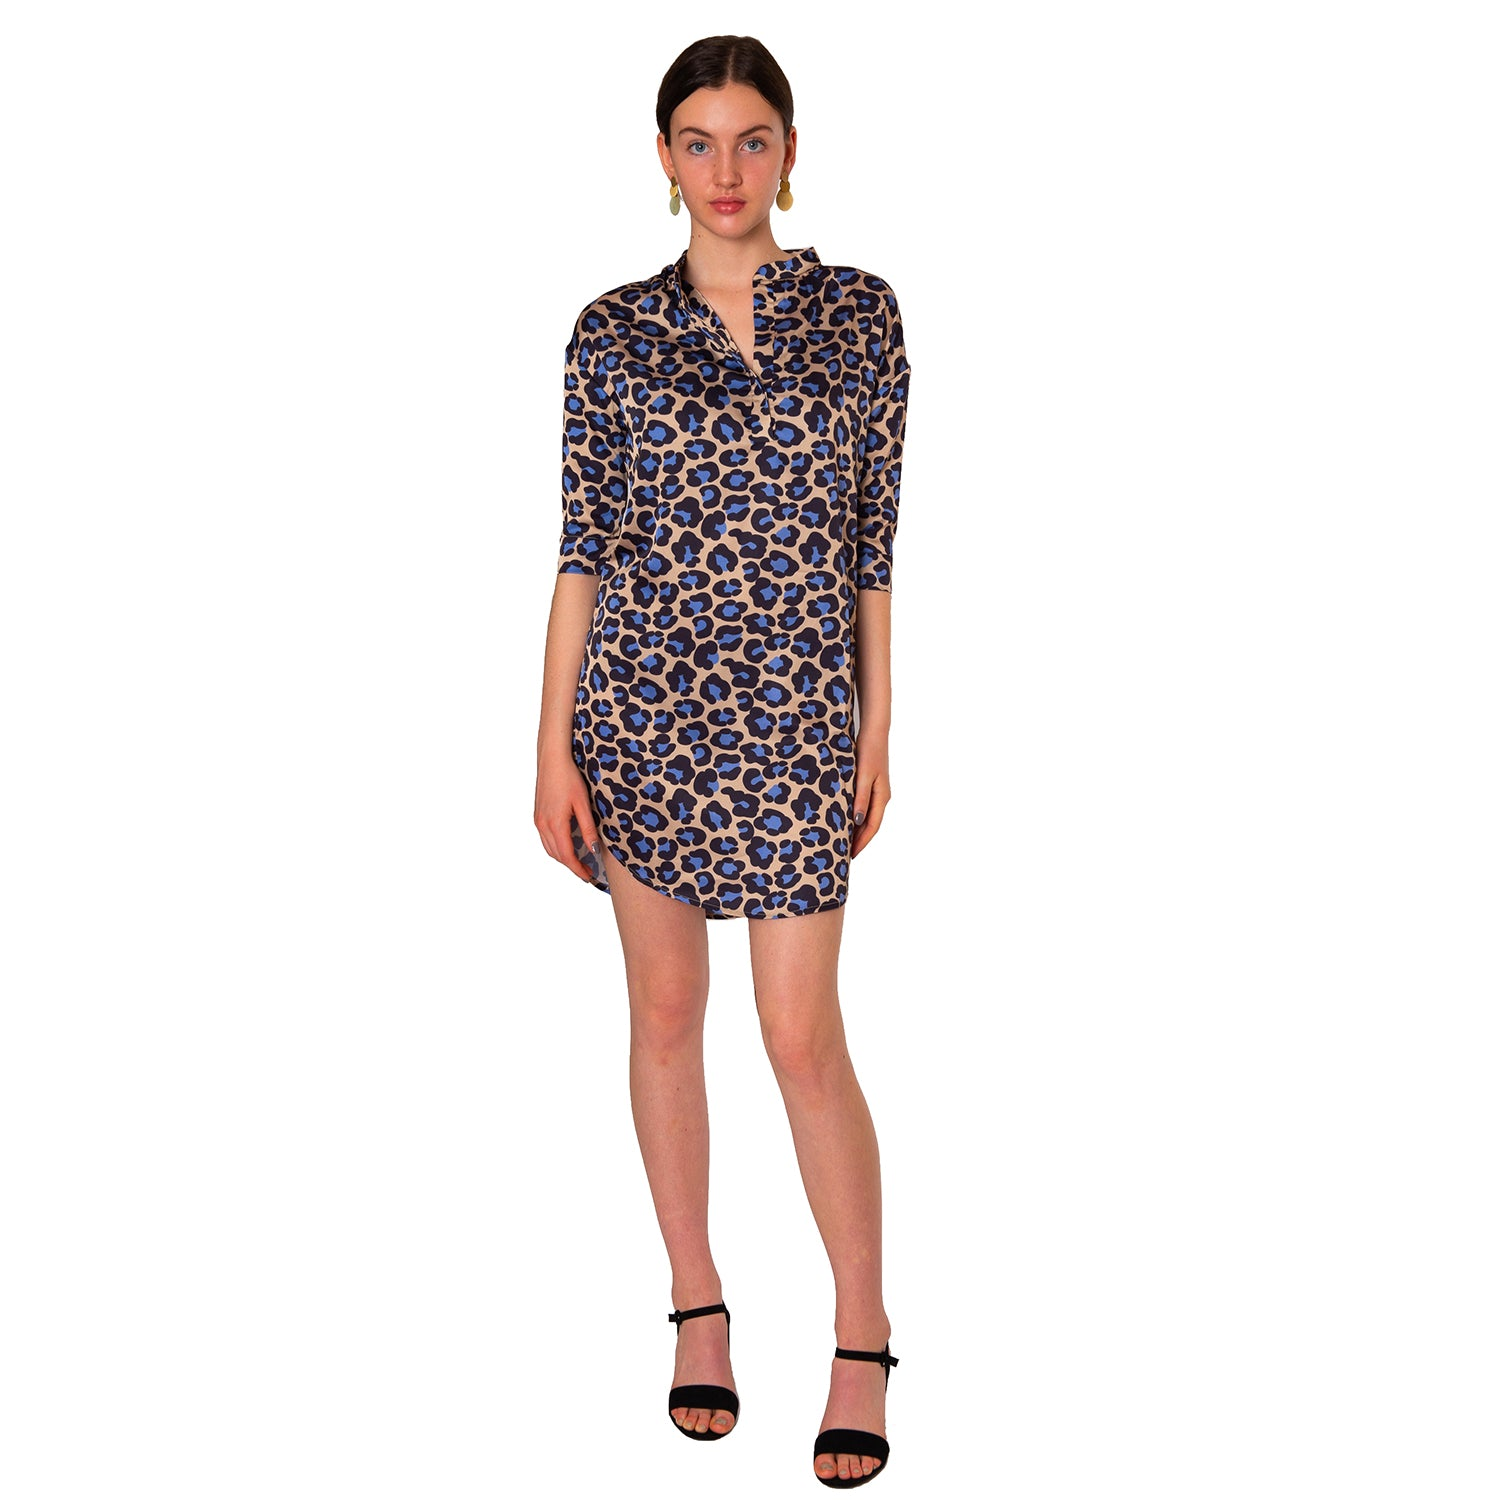 Heather Mandarin Collar Dress in Tan Leopard - Elizabeth Ackerman New York